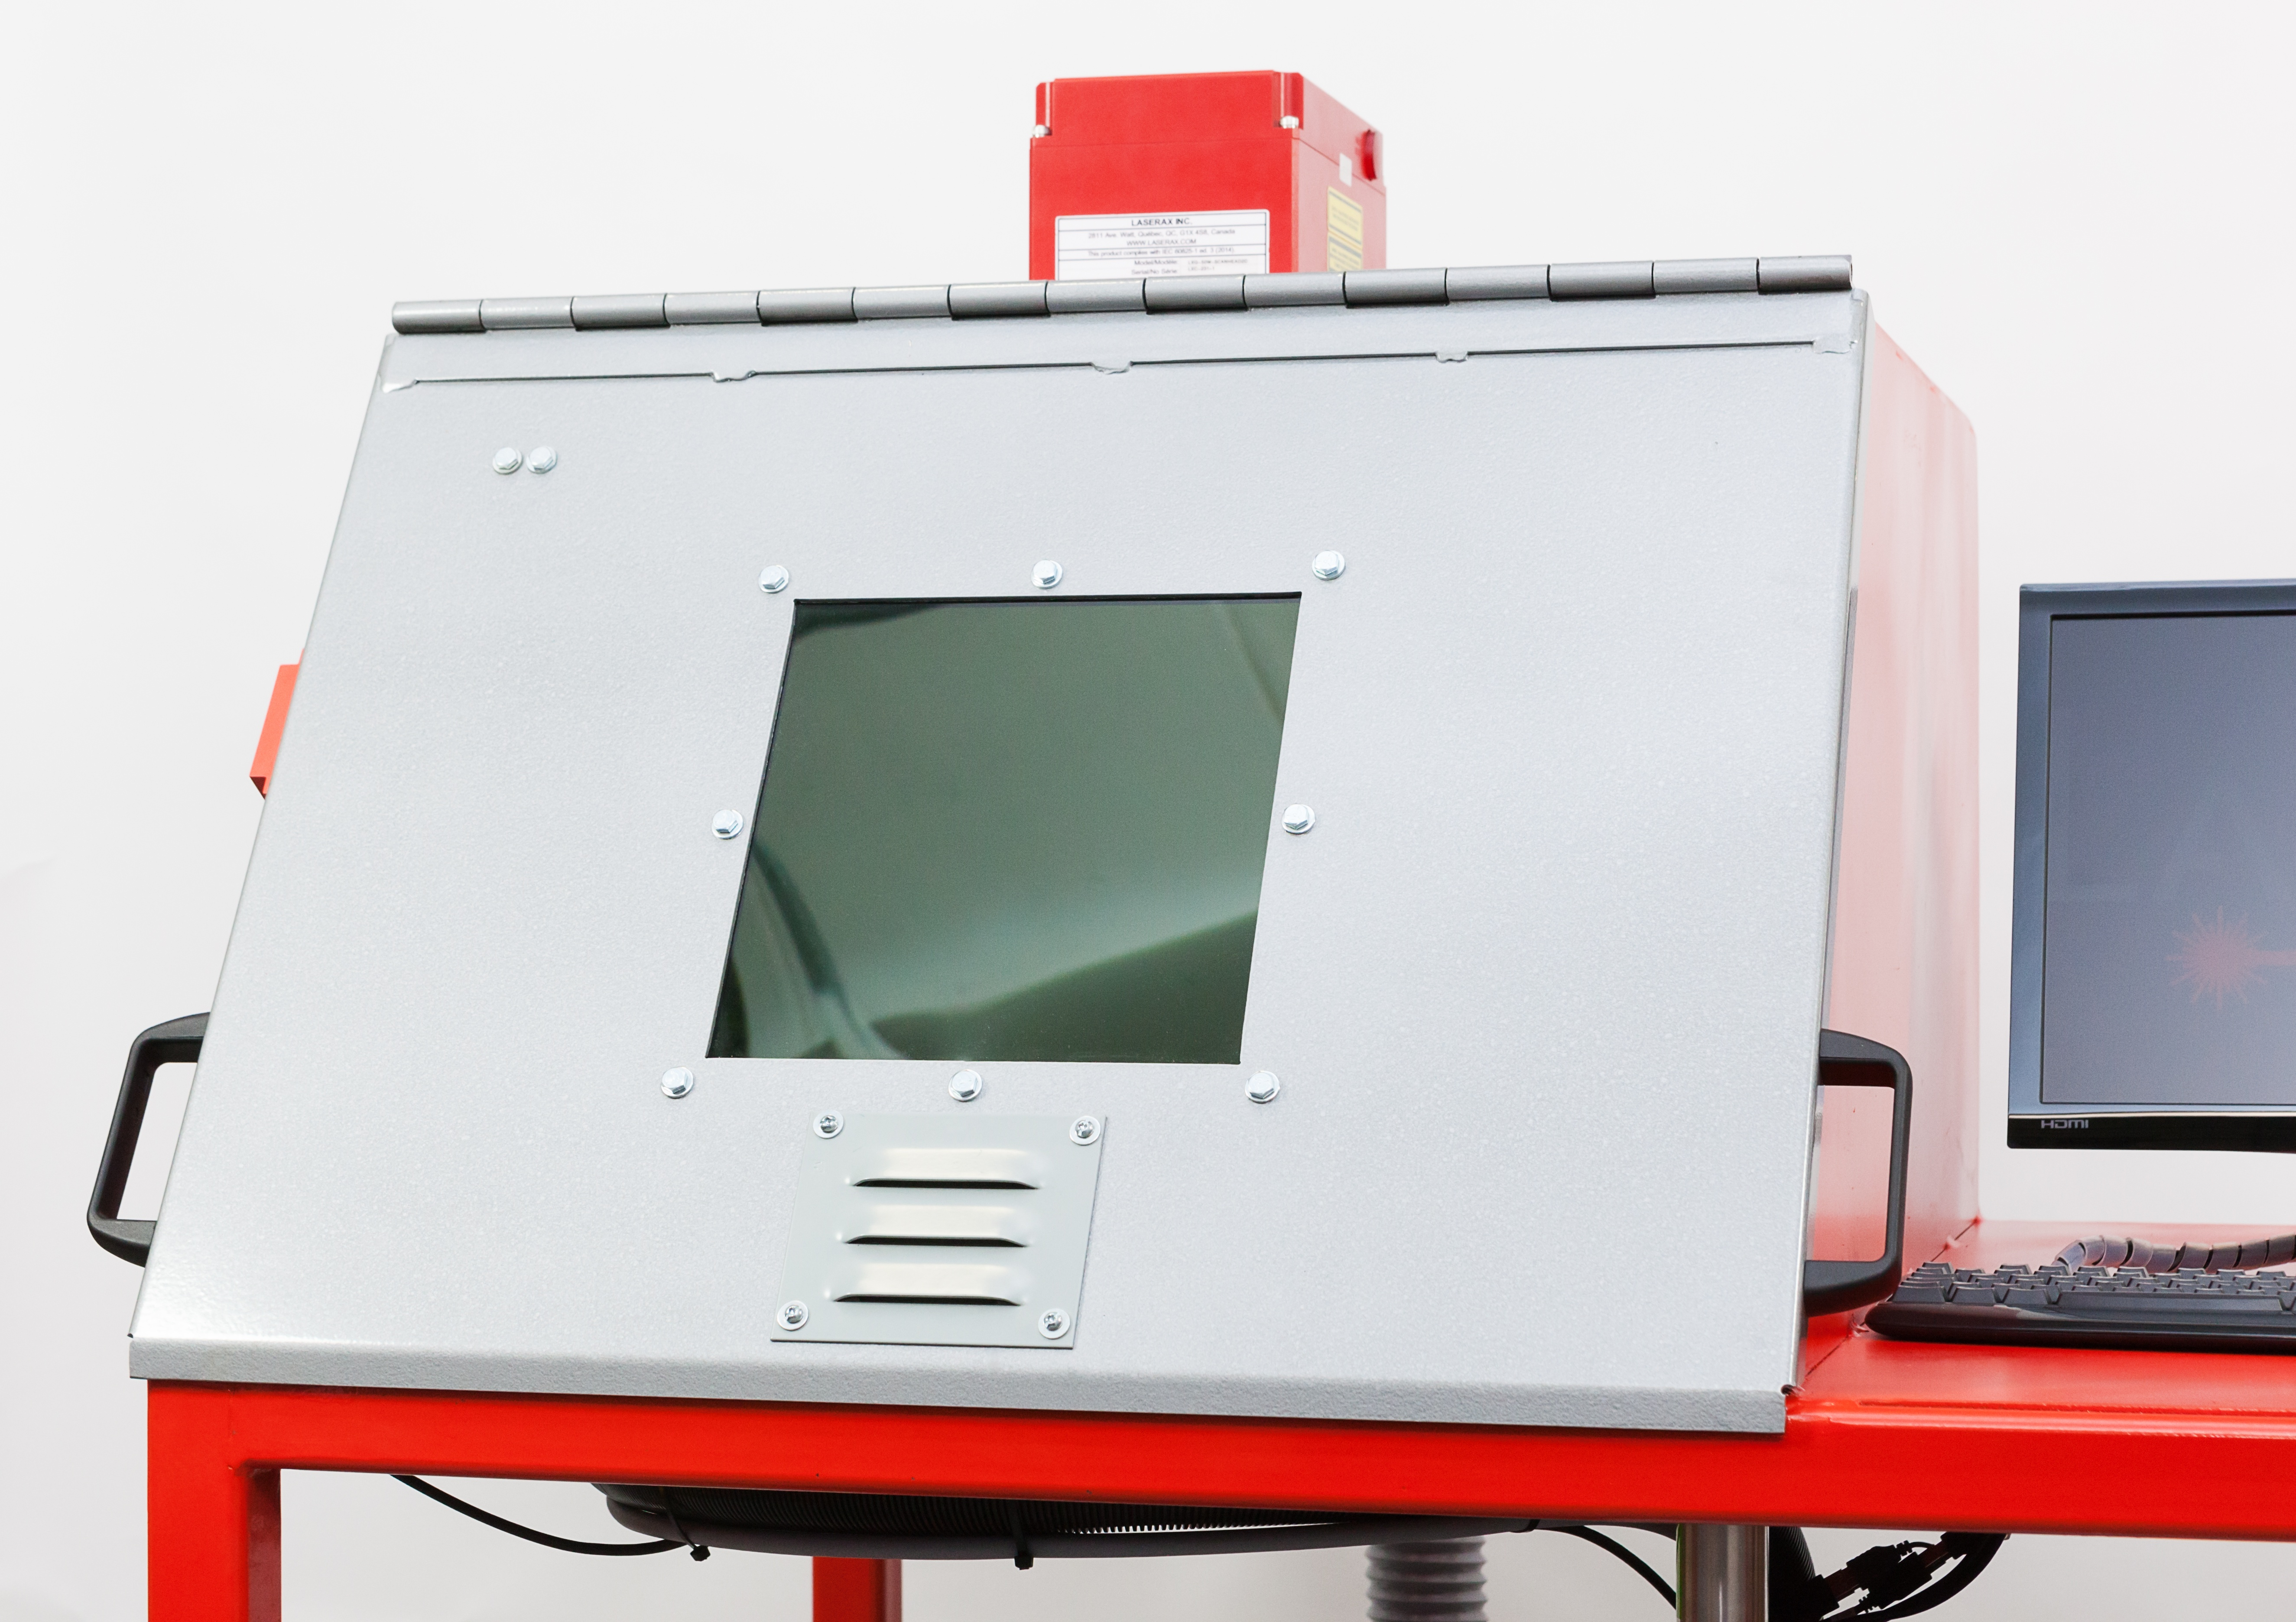 Laser safety enclosure topped by the laser head